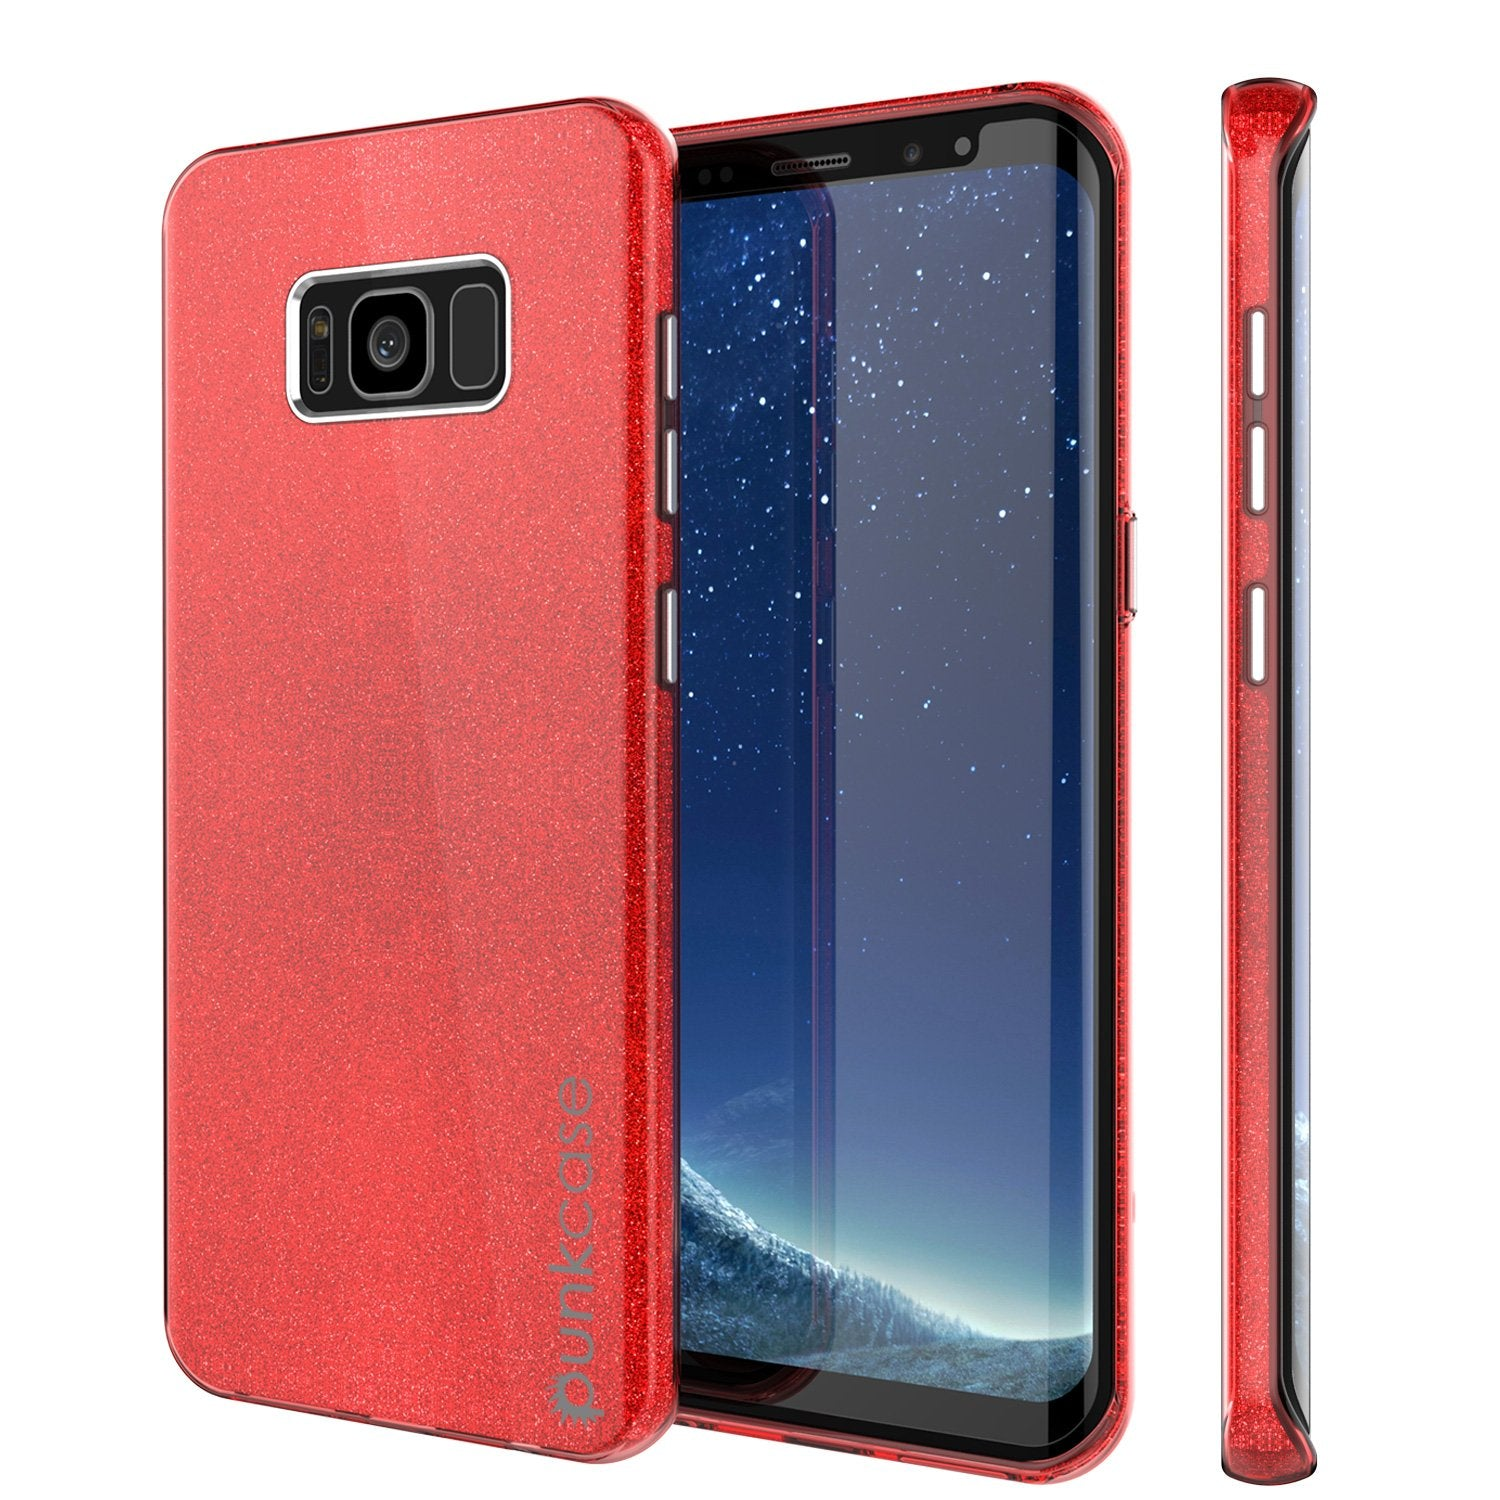 Galaxy S8 Plus Case, Punkcase Galactic 2.0 Series Ultra Slim Protective Armor TPU Cover [Red]